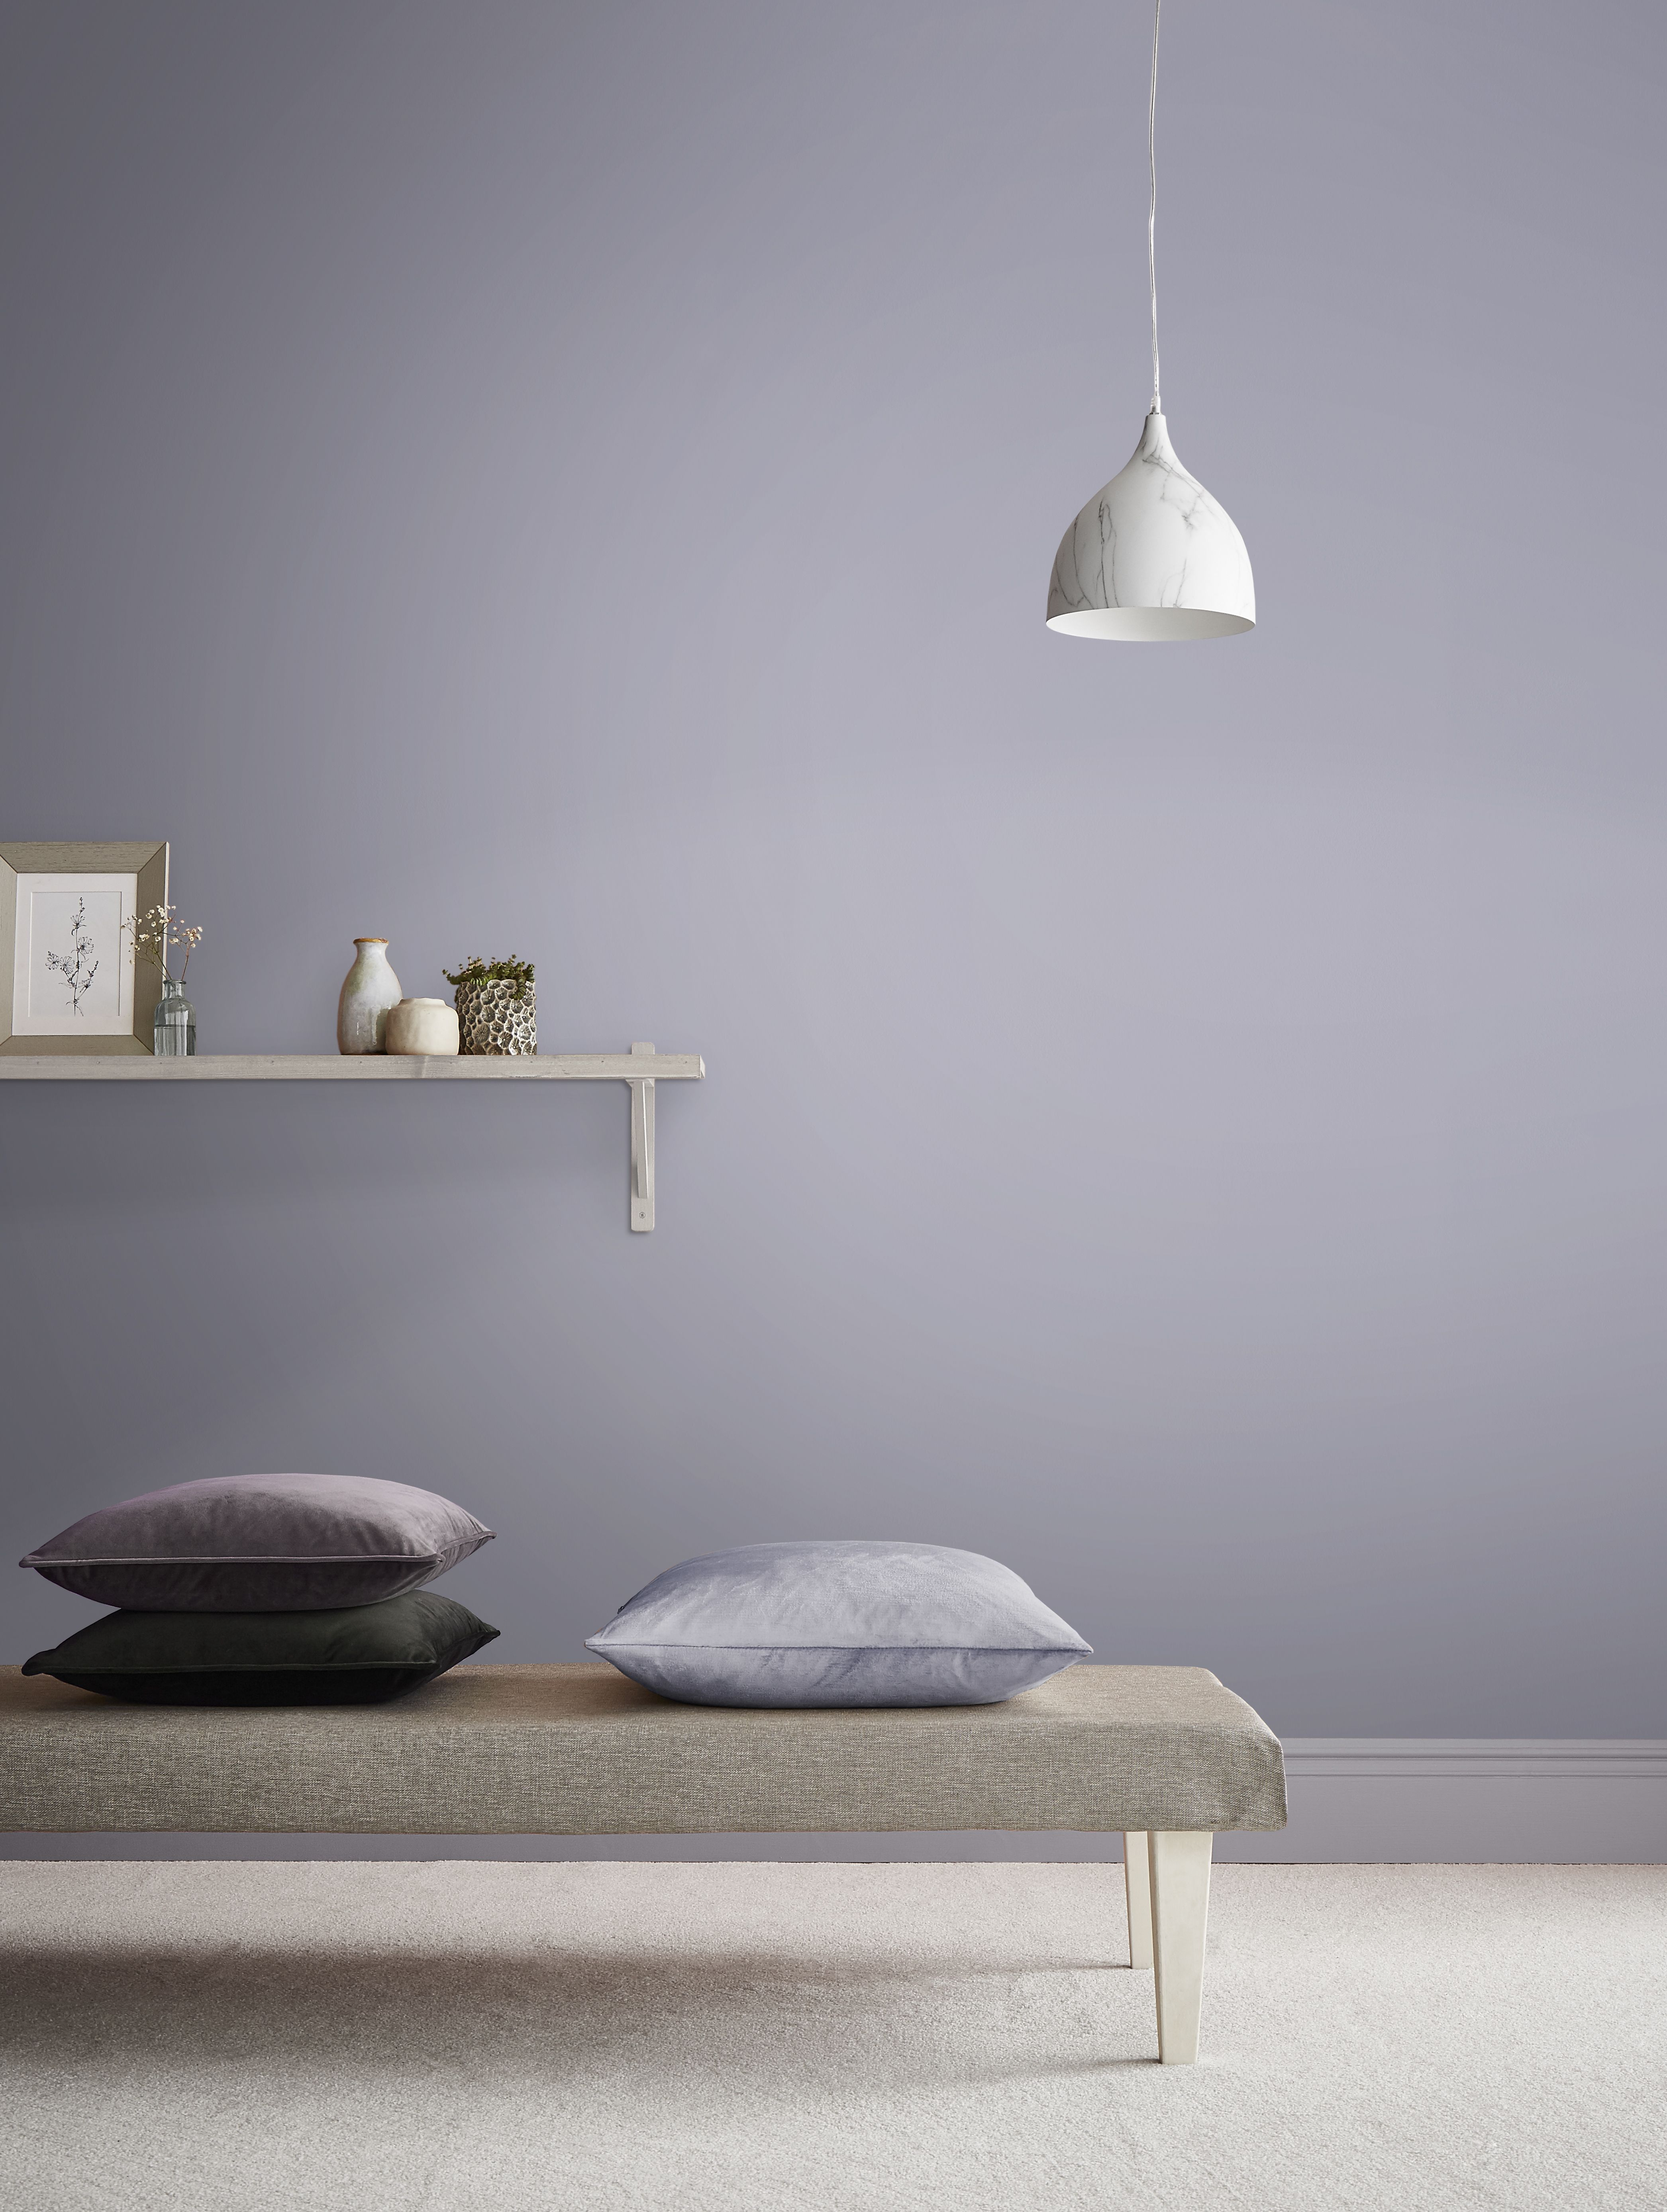 Pin By Nippon Paint Singapore On Purple Nippon Paint Singapore In 2021 Purple Gray Bedroom Walls Lilac Living Room Living Room Grey Gray bedroom wall paint